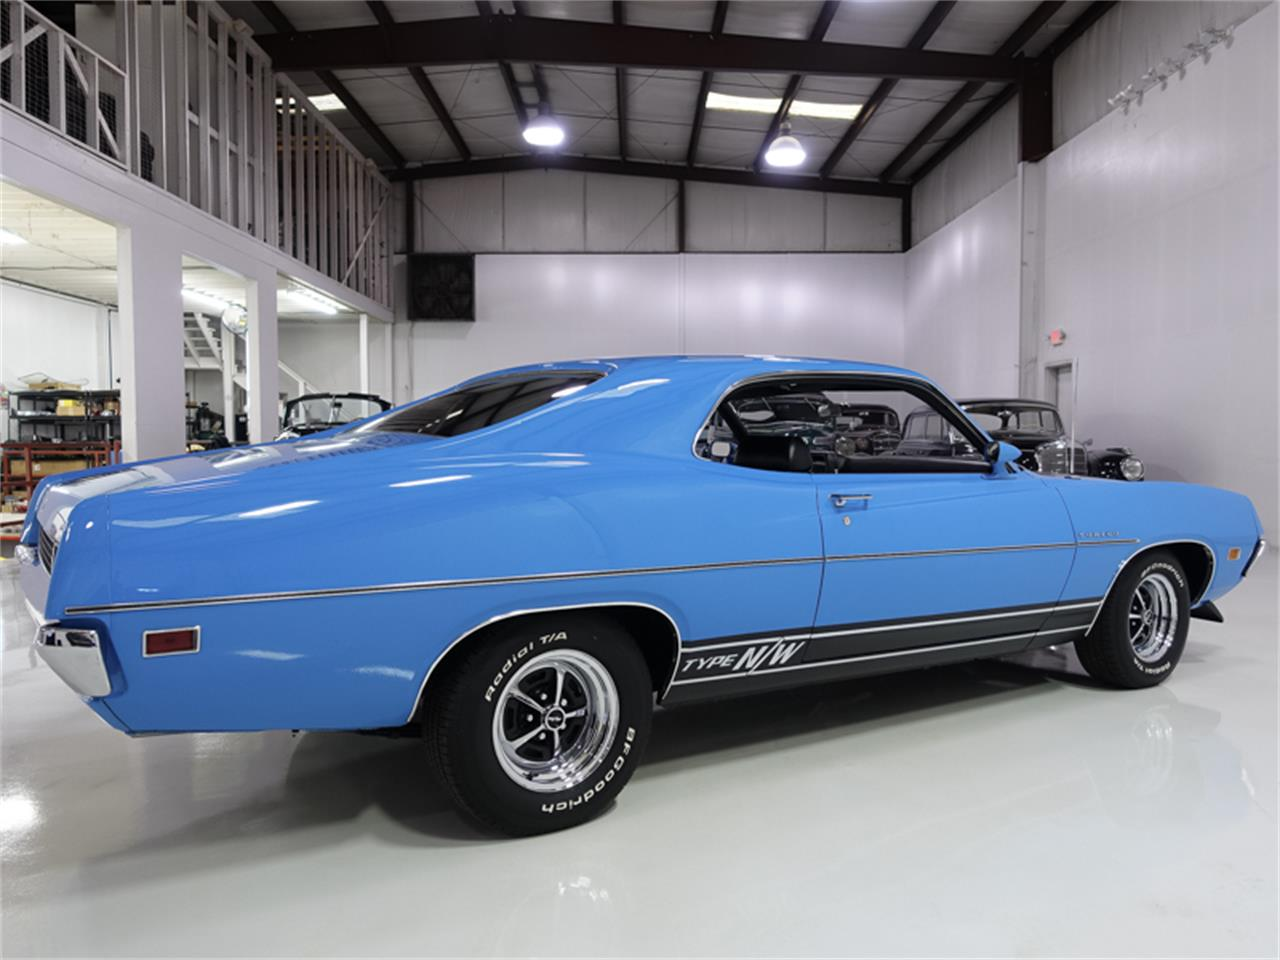 Large Picture of Classic 1970 Torino - $59,900.00 Offered by Daniel Schmitt & Co. - MSON